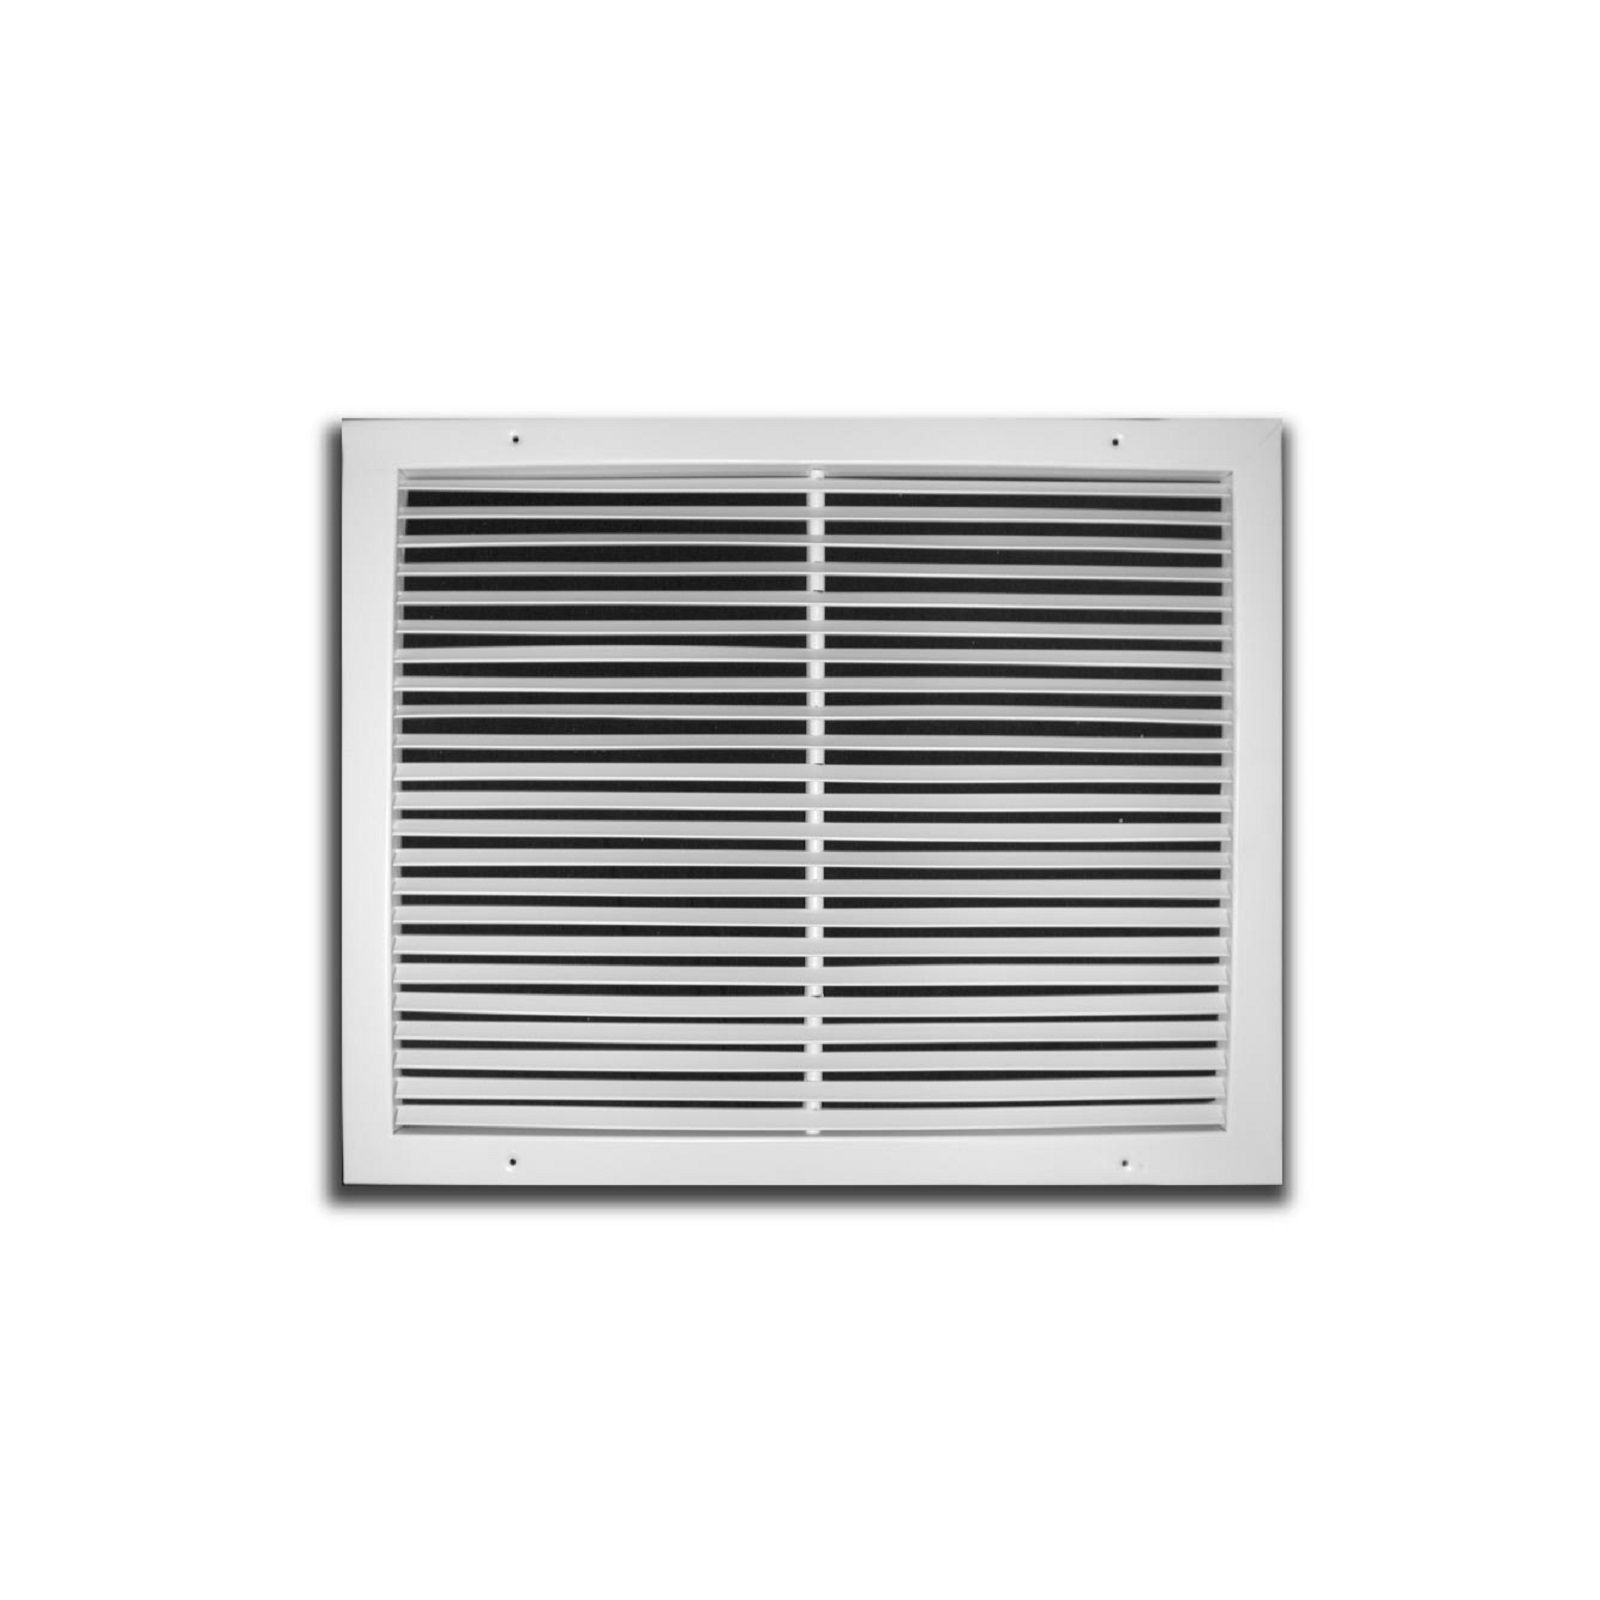 "TRUaire 270 10X06 - Steel Fixed Bar Return Air Grille, White, 10"" X 06"""